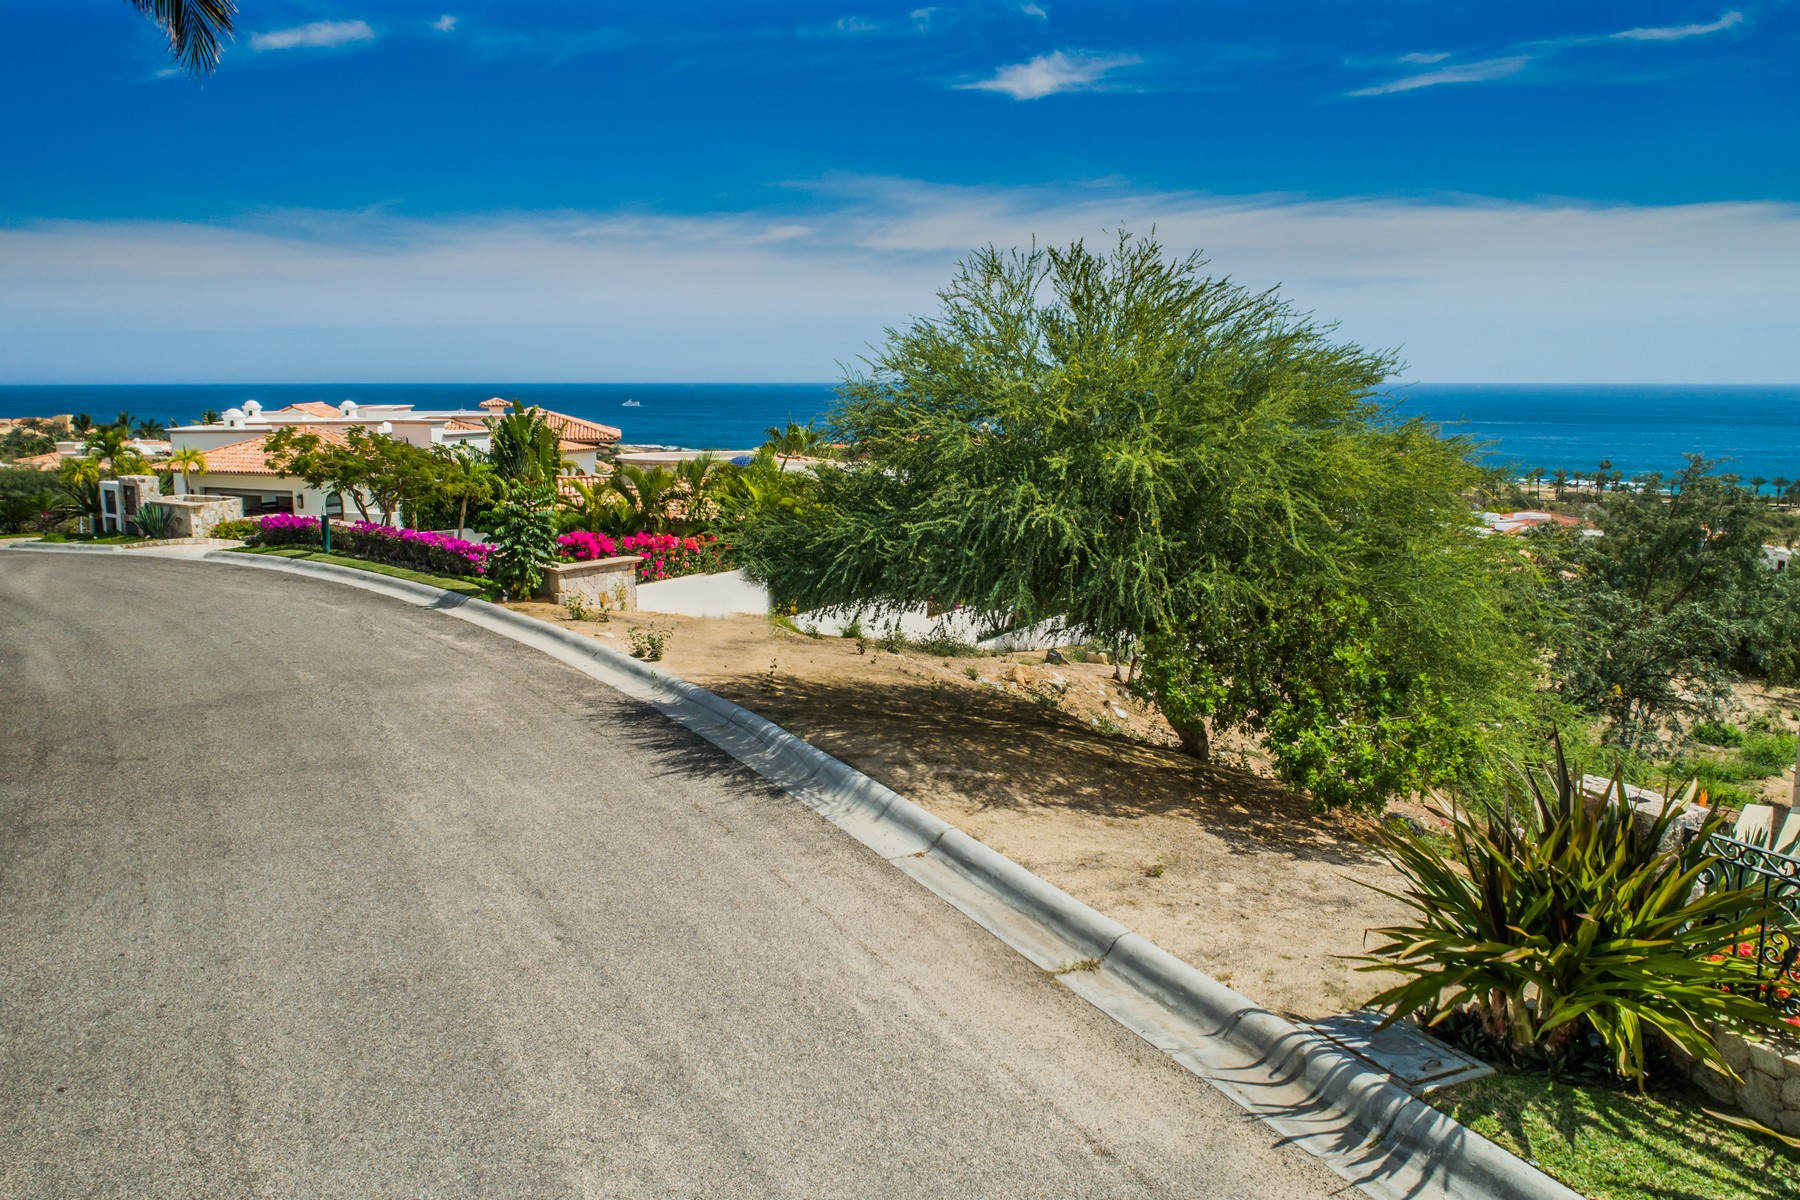 Additional photo for property listing at Las Colinas Lote 19 Las Colinas Lote 19 Cabo del Sol Cabo San Lucas, Baja California Sur 23455 Mexico